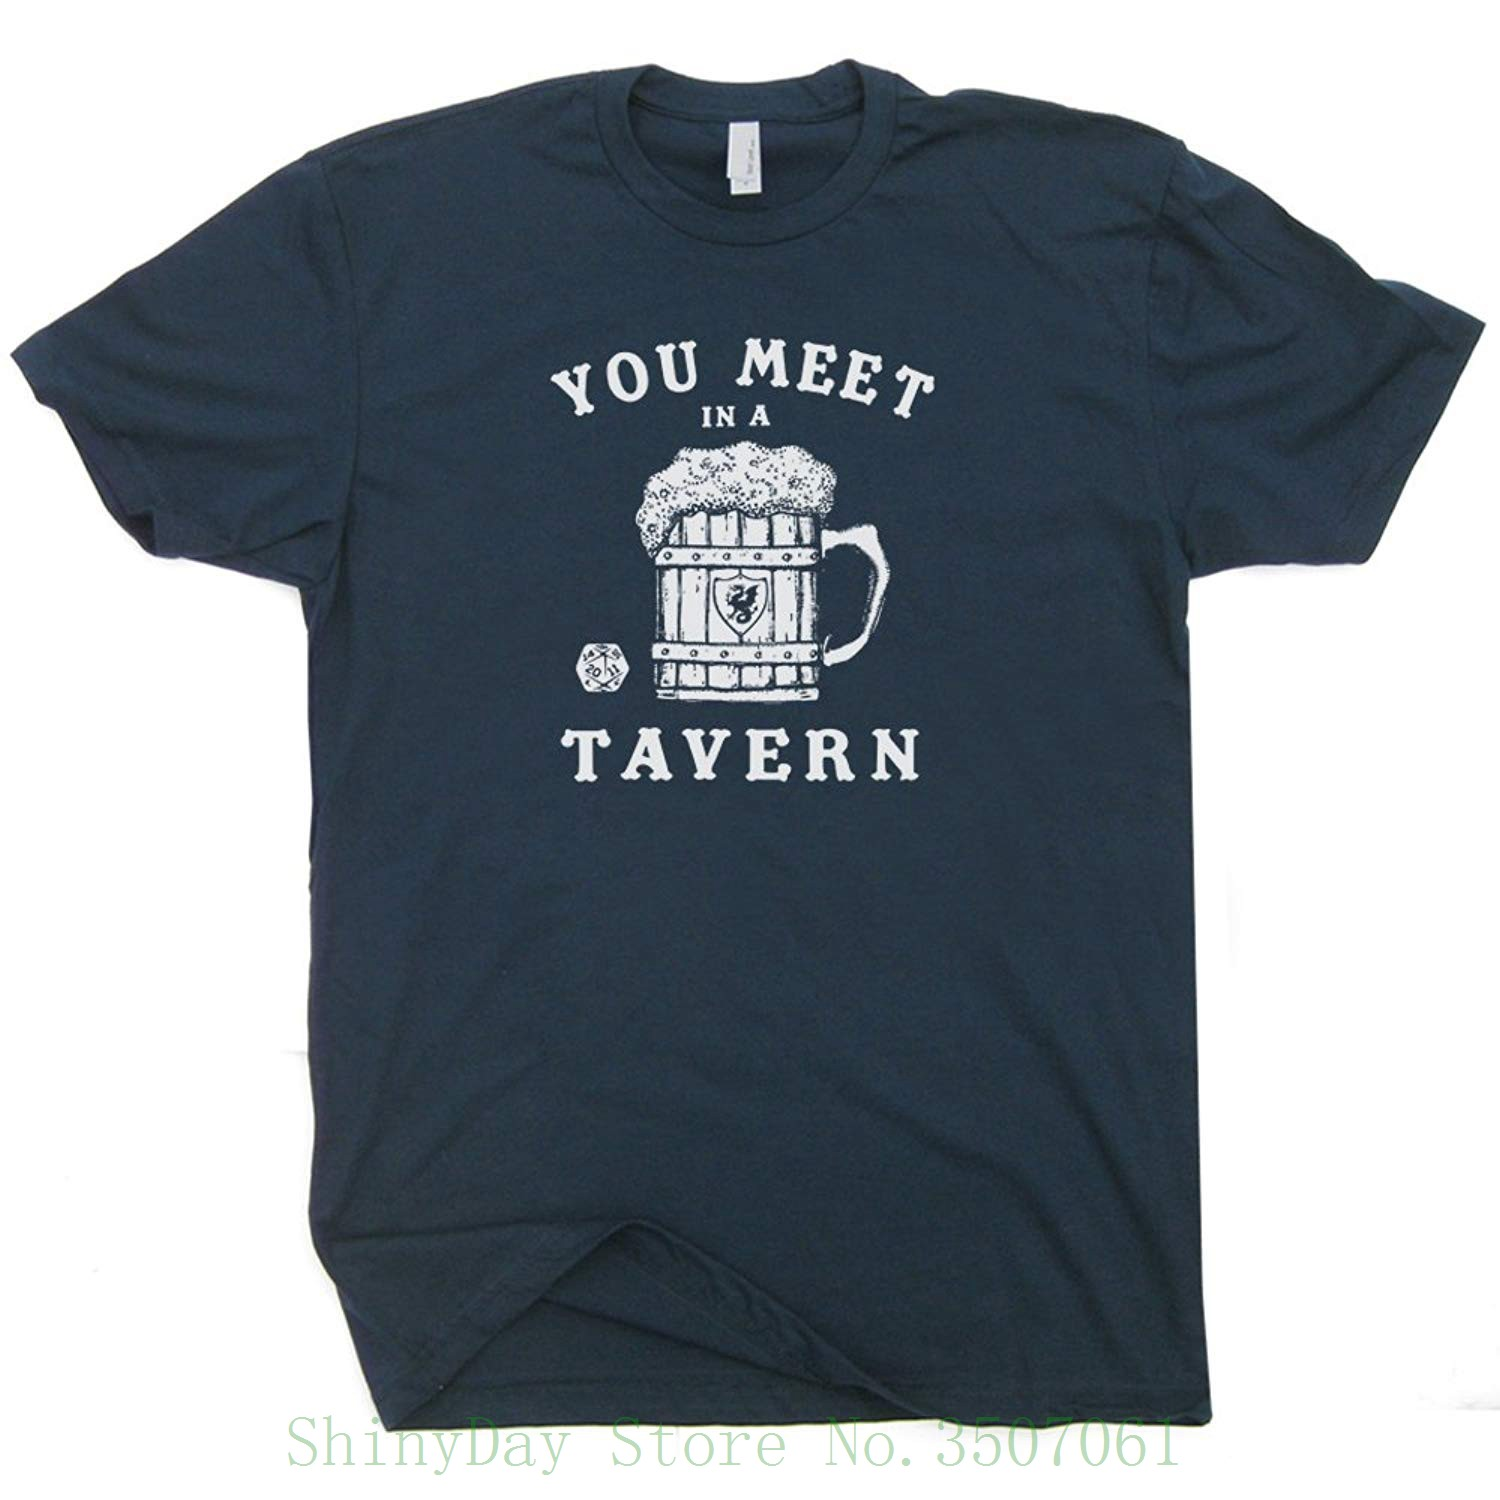 Dungeons Tavern Shirt 20 Sided Dice Shirts And Magic Dragons Beer Mug The Dungeon Master Fantasy Rpg Gamer Gathering Funny Tee image